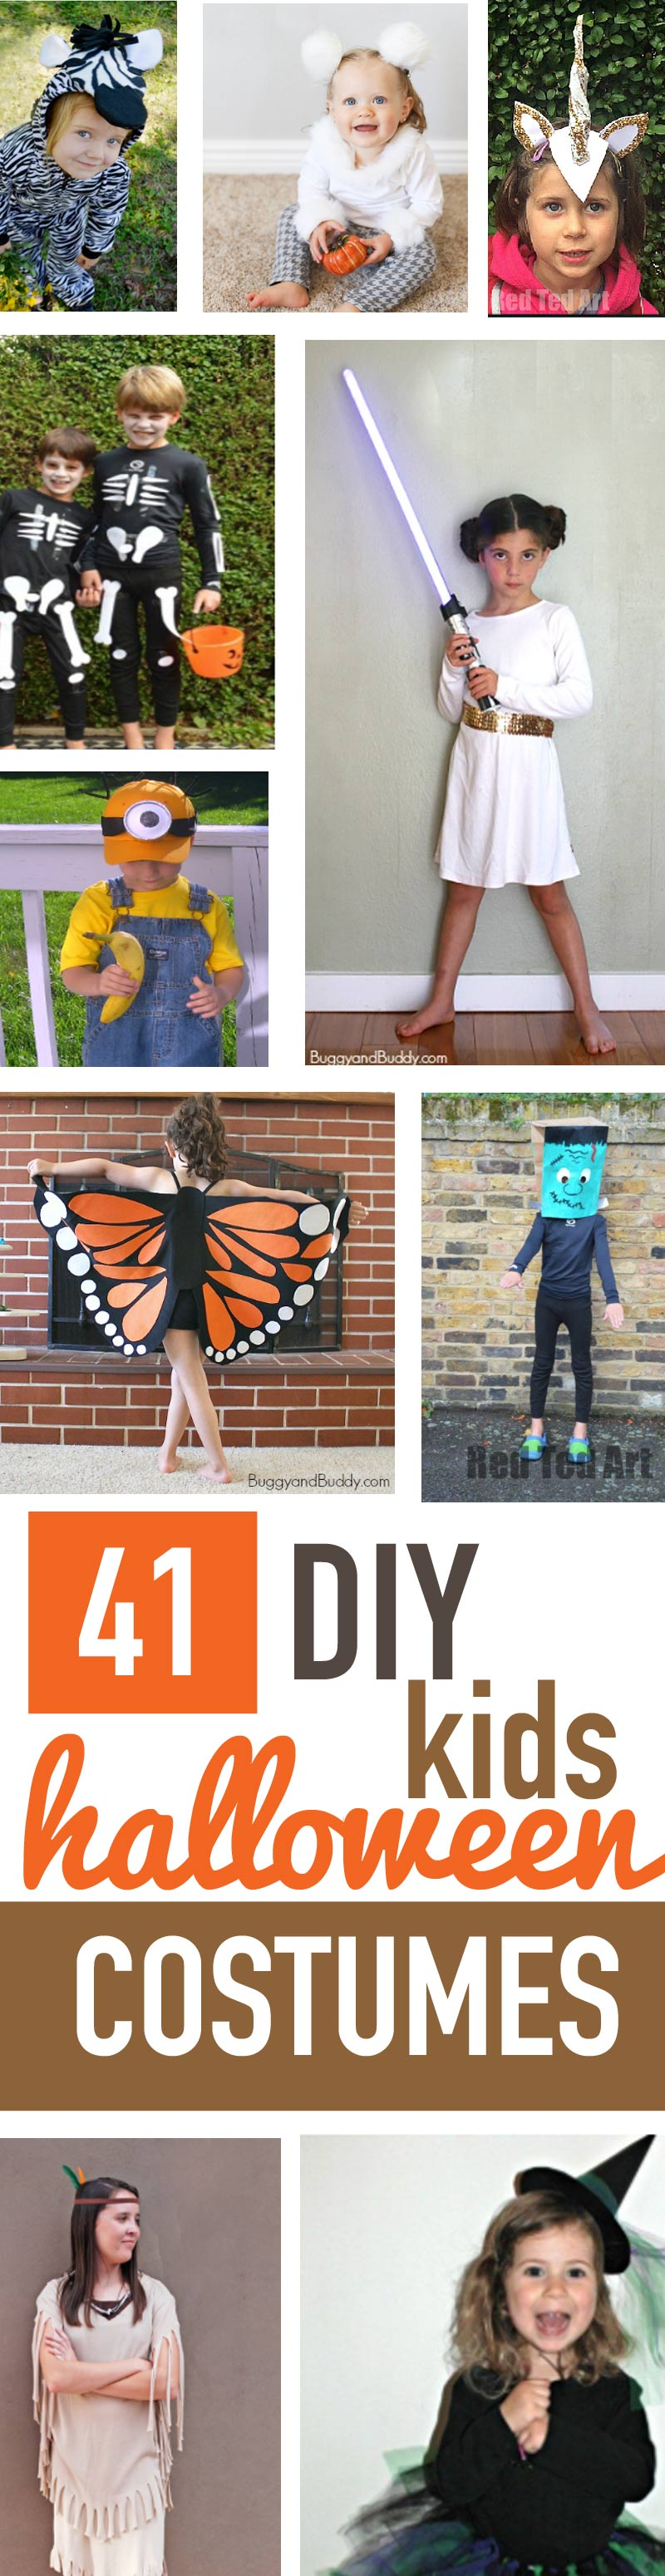 diy kids halloween costumes | diy kids halloween costumes ideas | diy kids halloween costume | kids halloween costumes diy | kid halloween costumes | kid halloween costume | make your own halloween costumes